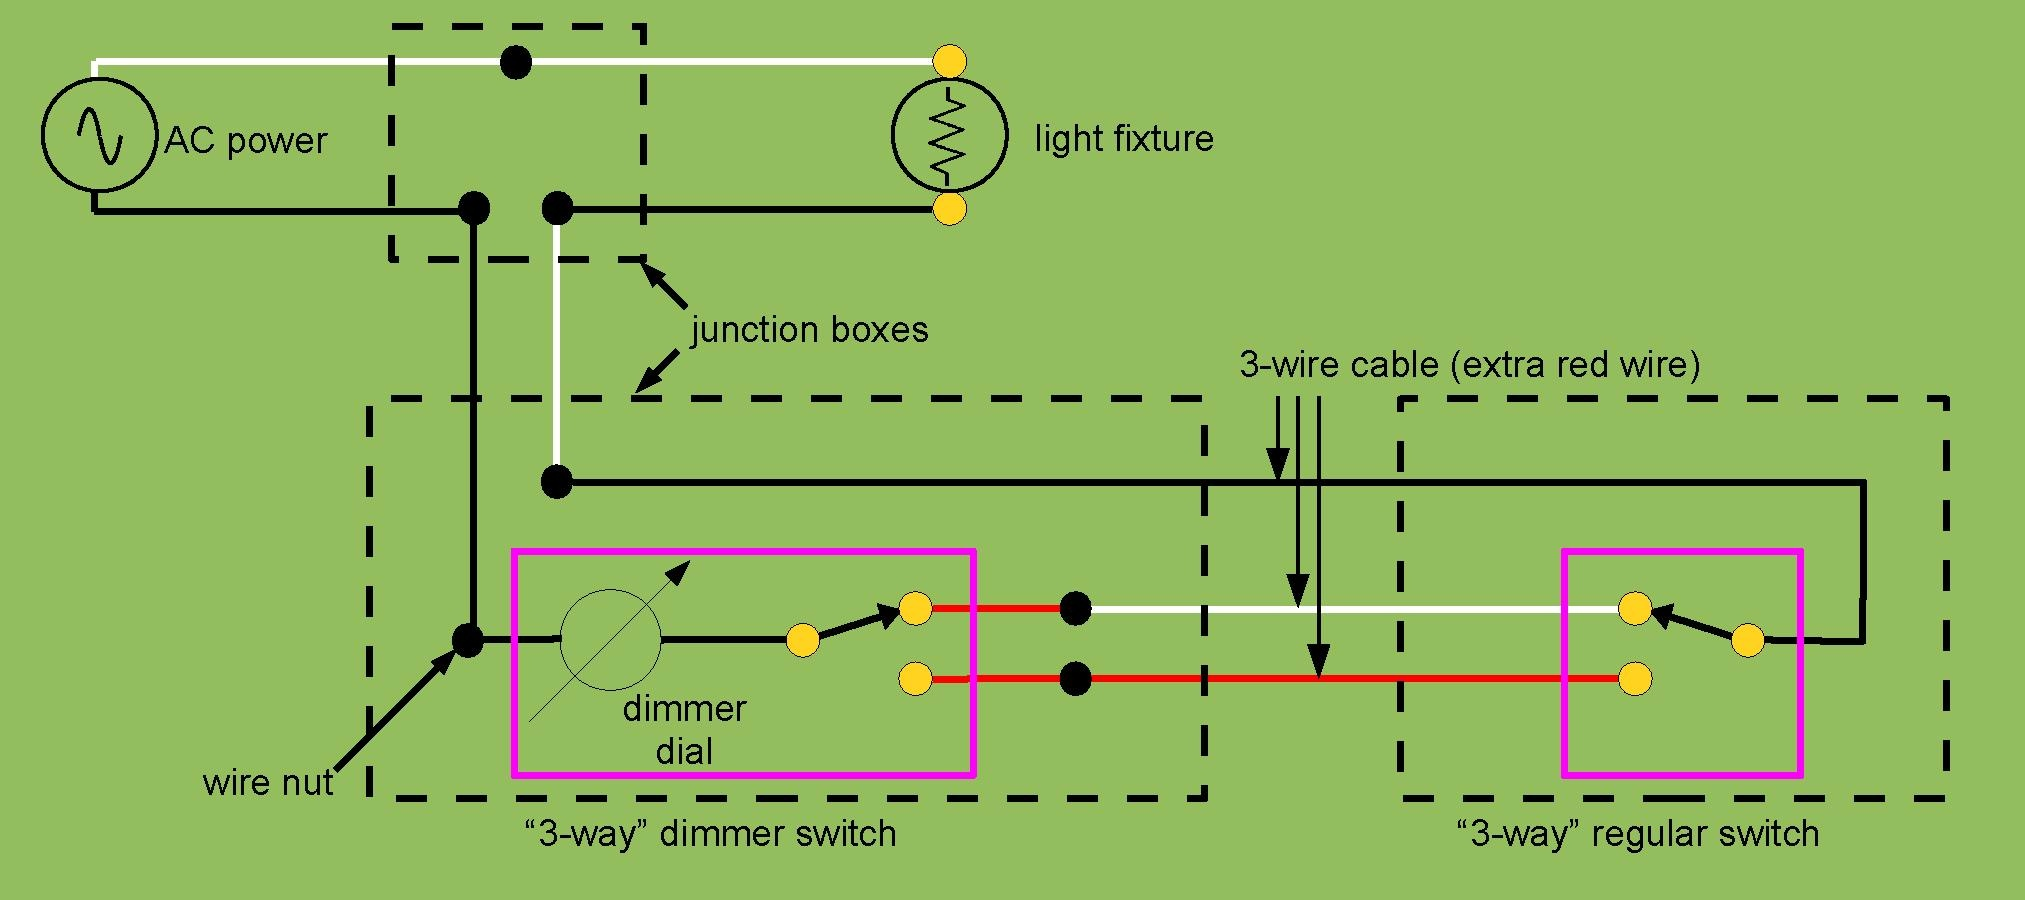 File:3-way dimmer switch wiring.pdf - Wikimedia CommonsWikimedia Commons